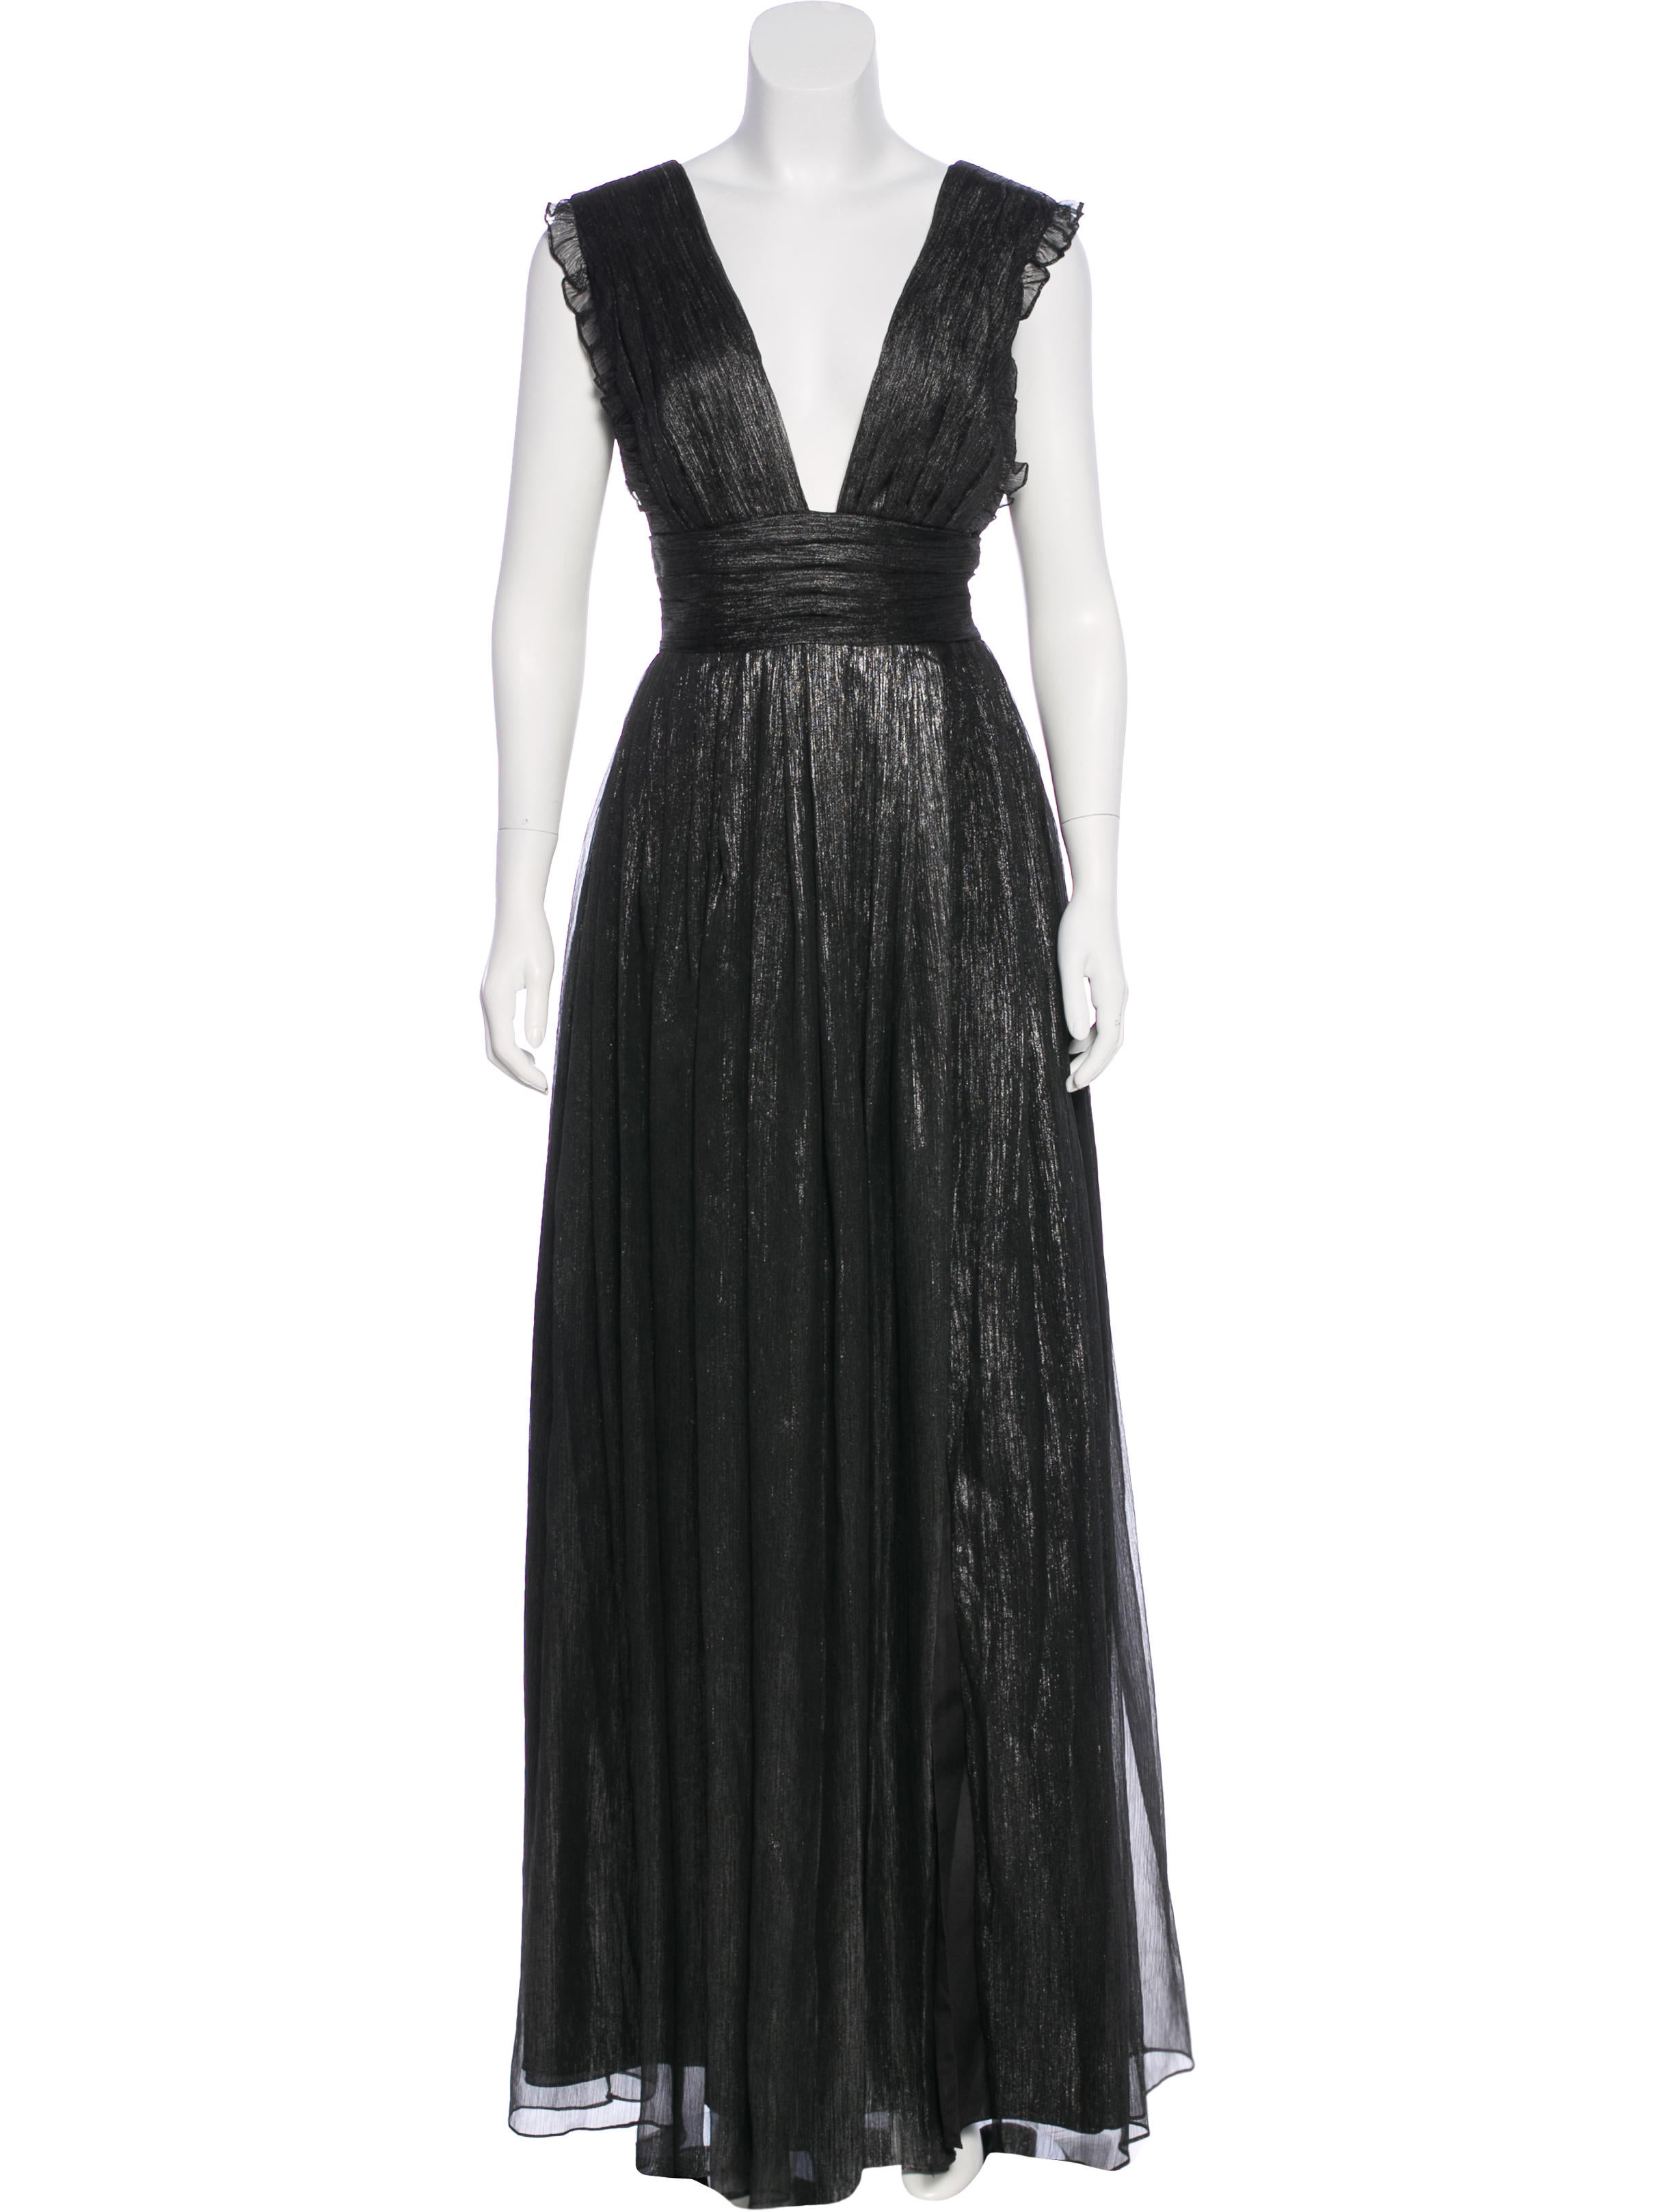 Monique Lhuillier Metallic-Accented Evening Dress w/ Tags - Clothing ...